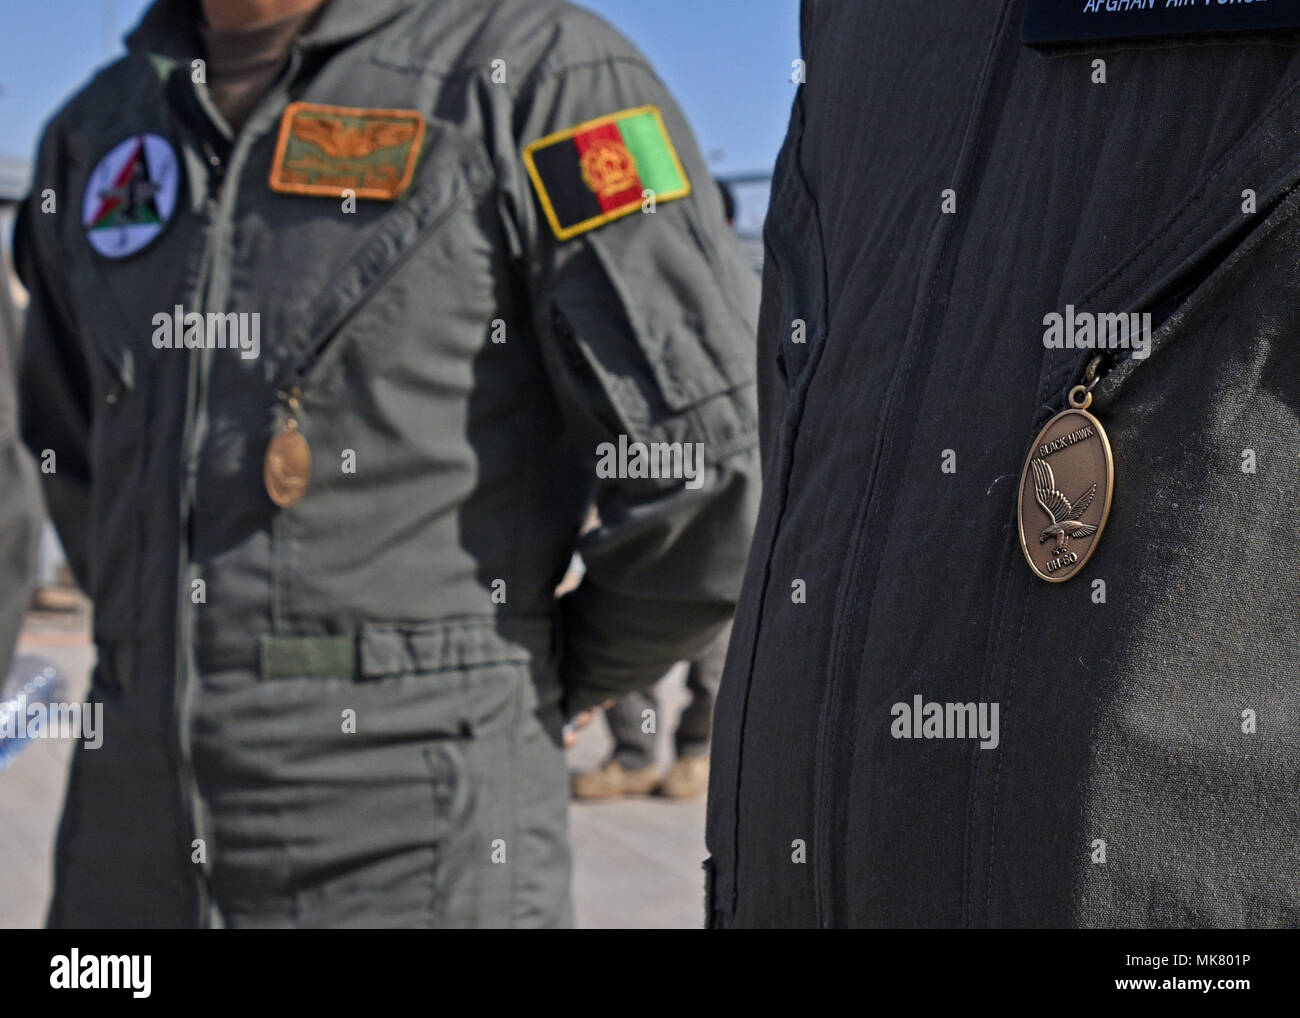 Afghan Air Force pilots wear Black Hawk pendants given by instructors signifying their completion of UH-60 Black Hawk training at Kandahar Airfield, Afghanistan, Nov. 20, 2017. The pilots are the first six to become AAF UH-60 pilots. The pilots have prior experience in the Mi-17 Hip. The transition of airframe for the AAF pilots will provide firepower and mobility, significant offensive factors enabling the Afghan National Defense and Security Forces to break the stalemate with insurgents. (U.S. Air Force photo by Tech. Sgt. Veronica Pierce) - Stock Image